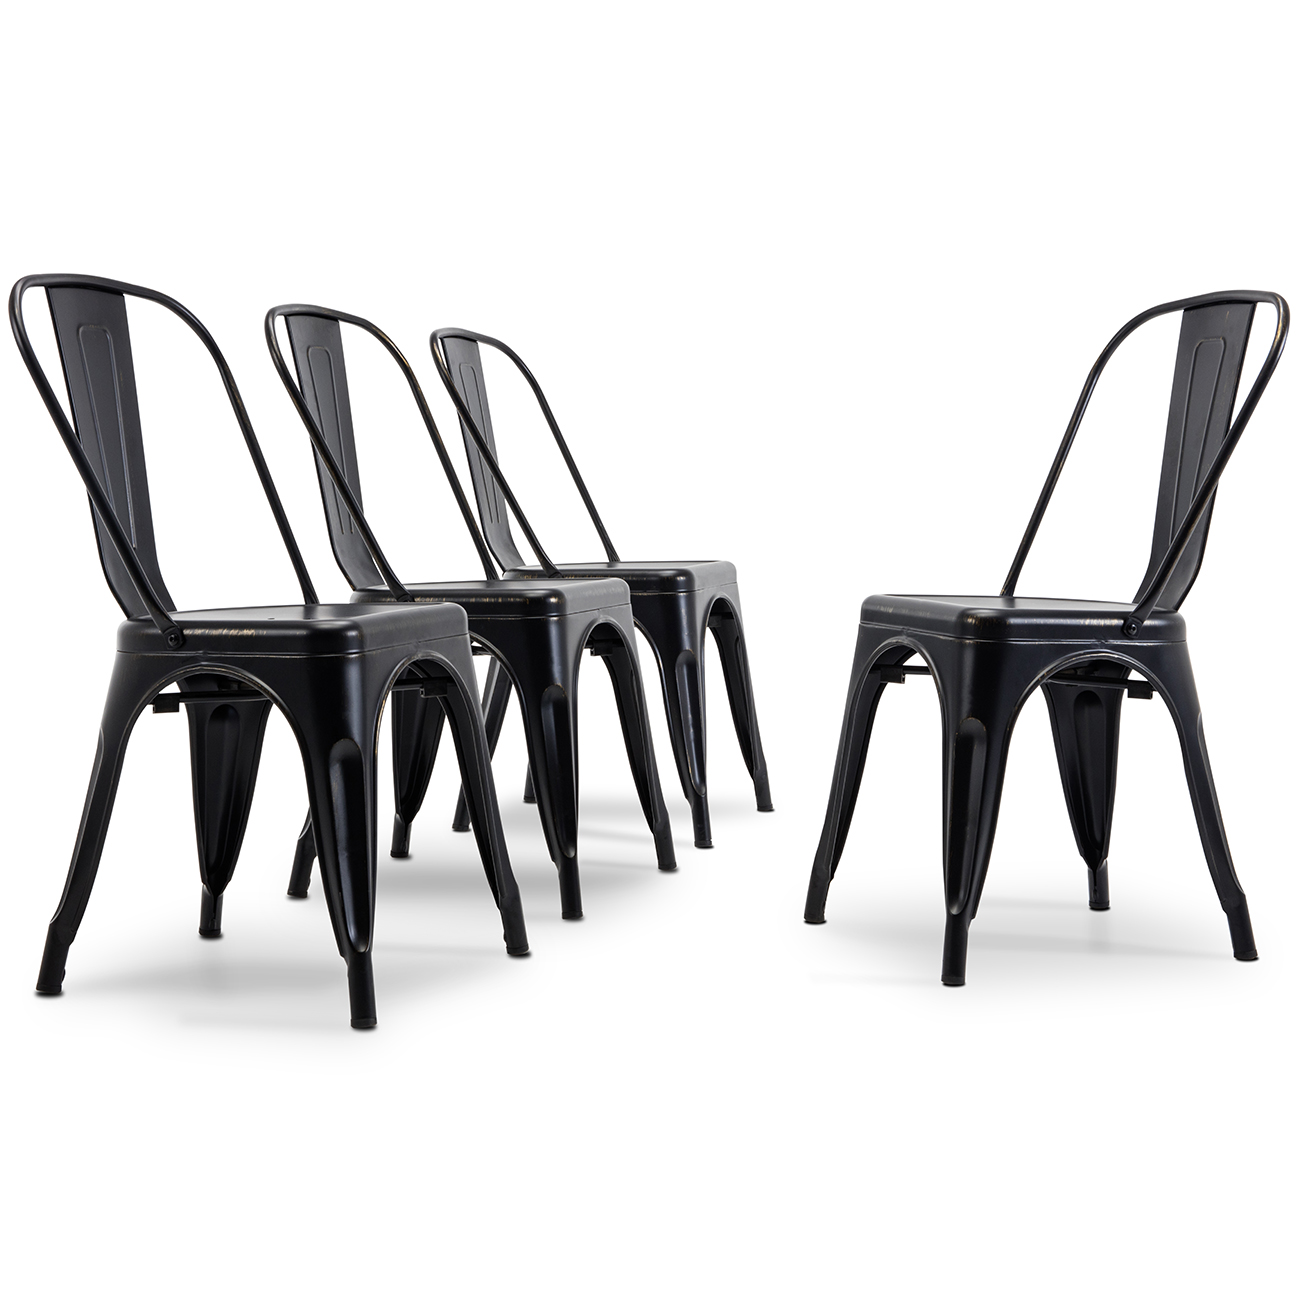 Metal Chairs Details About Antique Black Set Of 4 Metal Chairs Stackable Dining Room Chairs Indoor Outdoor